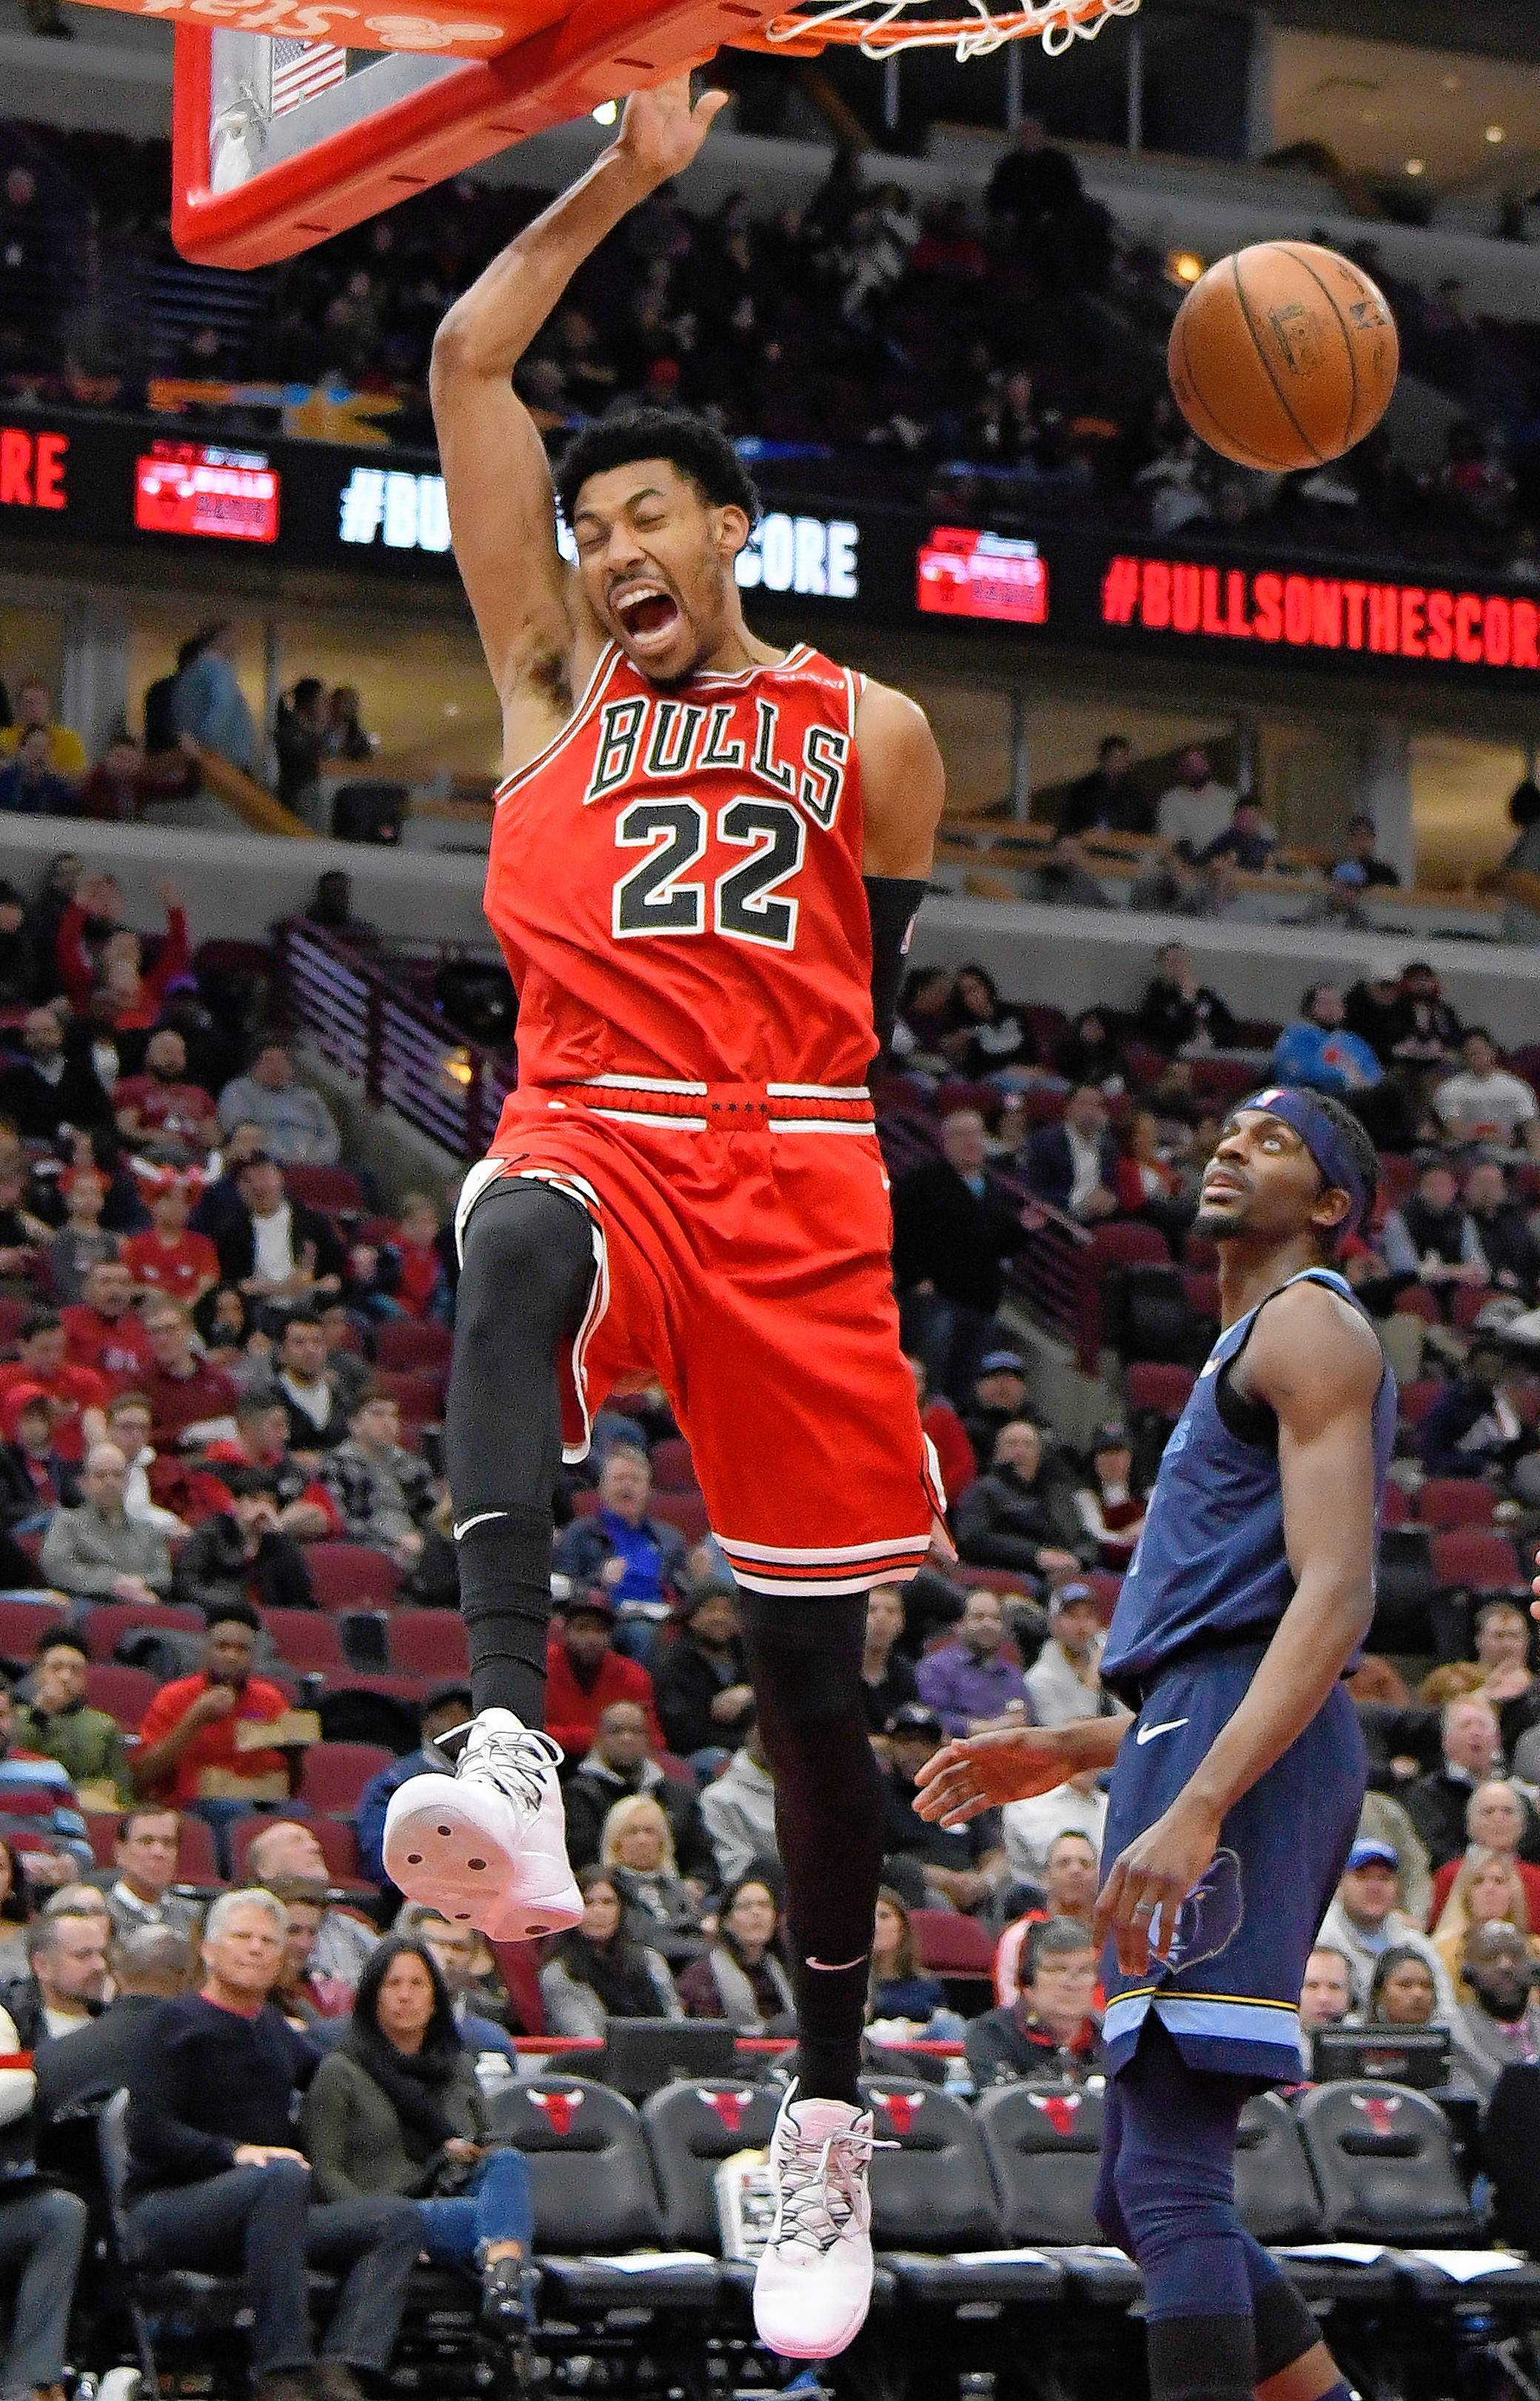 Is Porter's fast start with the Bulls sustainable over long haul?